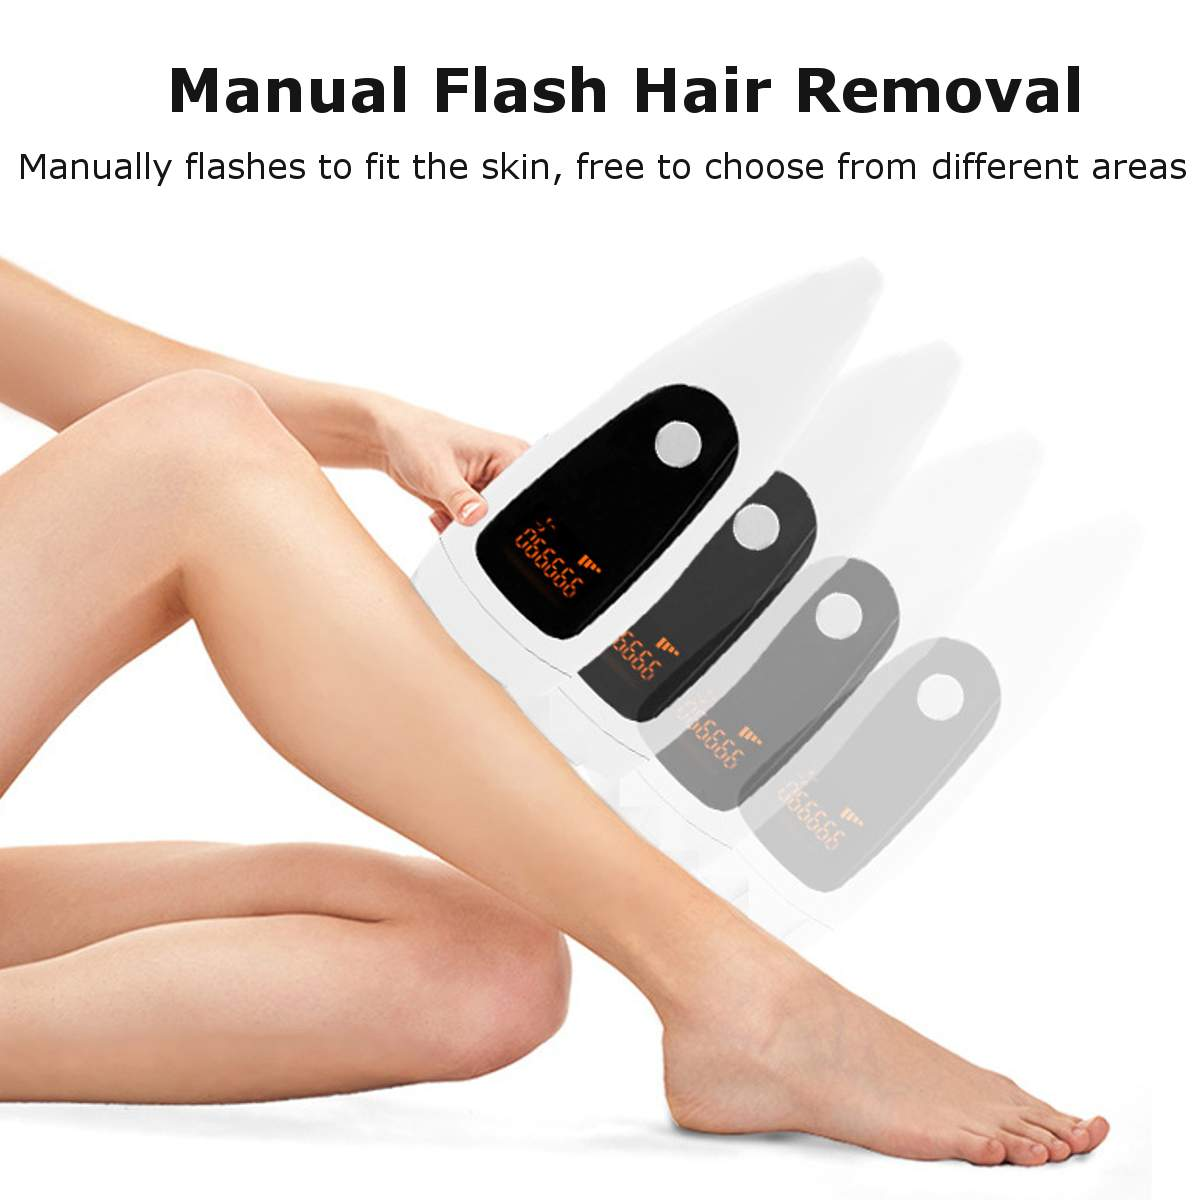 IPL Laser Hair Removal Machine Epilator 999999 Flashes Professional Permanent Removal Electric Photo Painless Bikini Trimmer enlarge